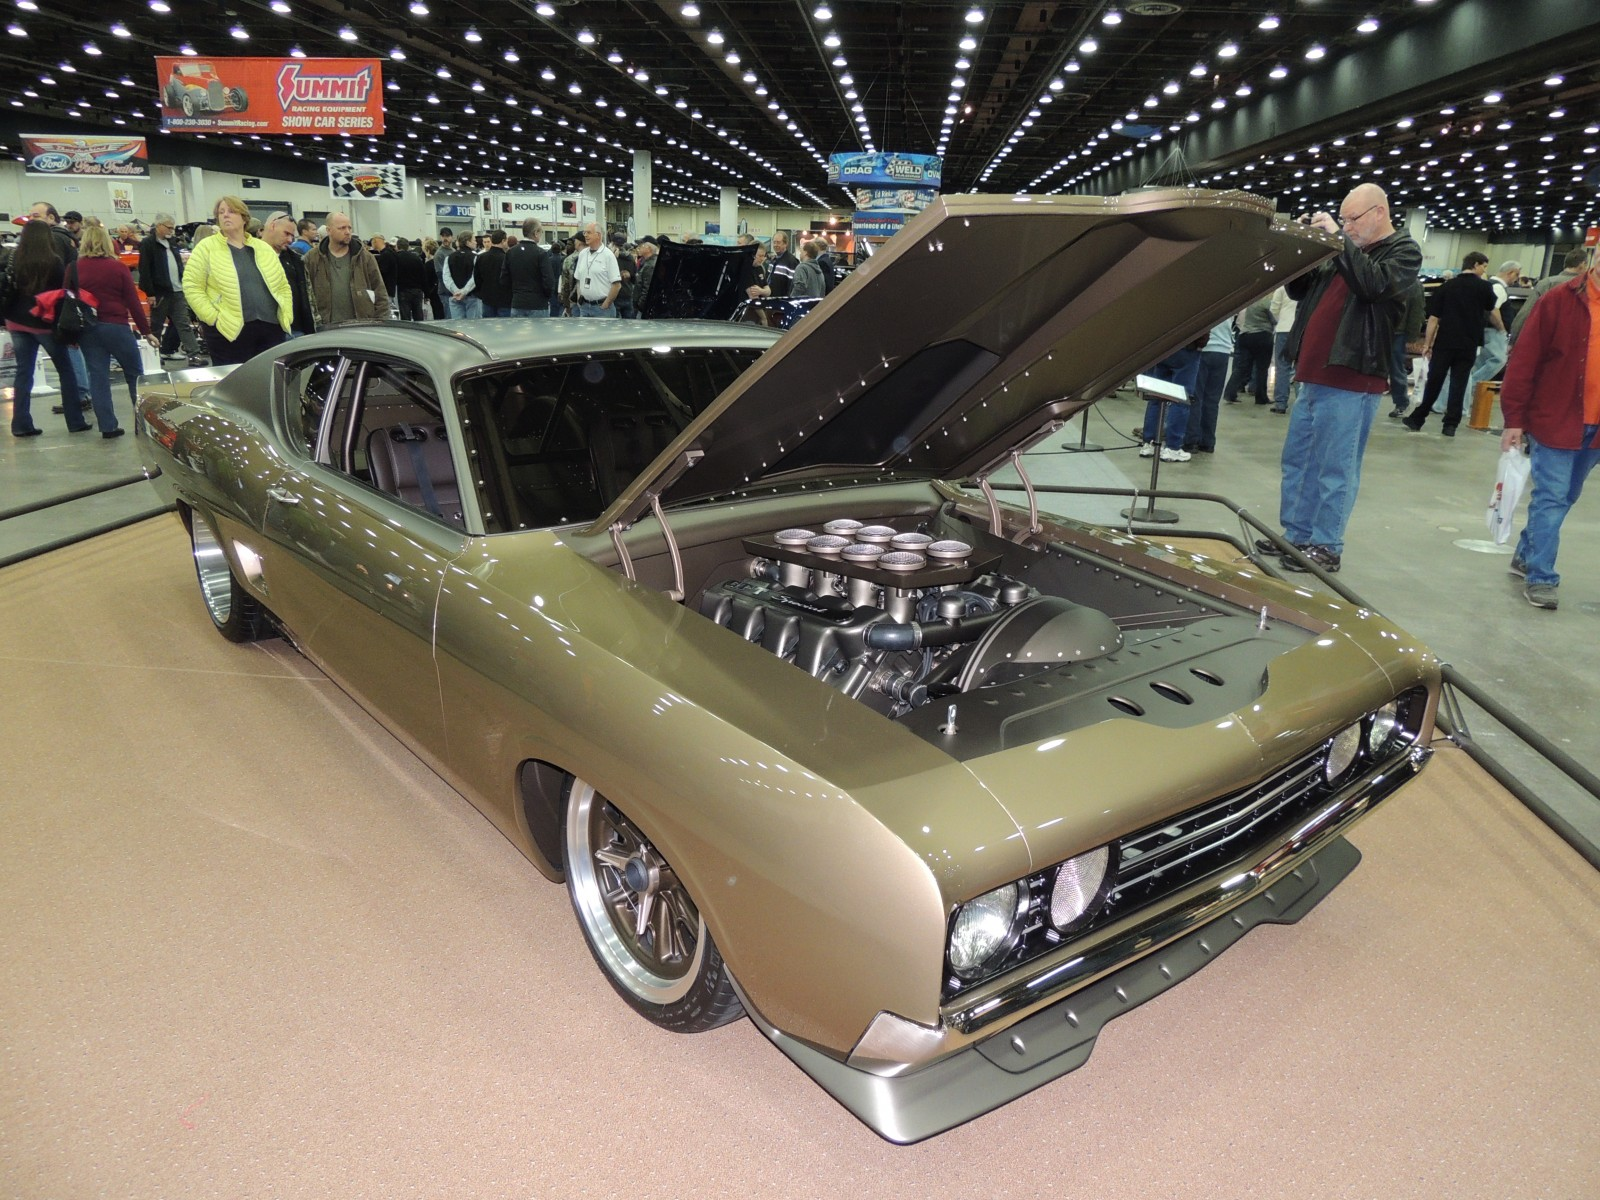 Ford Torino Photos and Wallpapers | TrueAutoSite